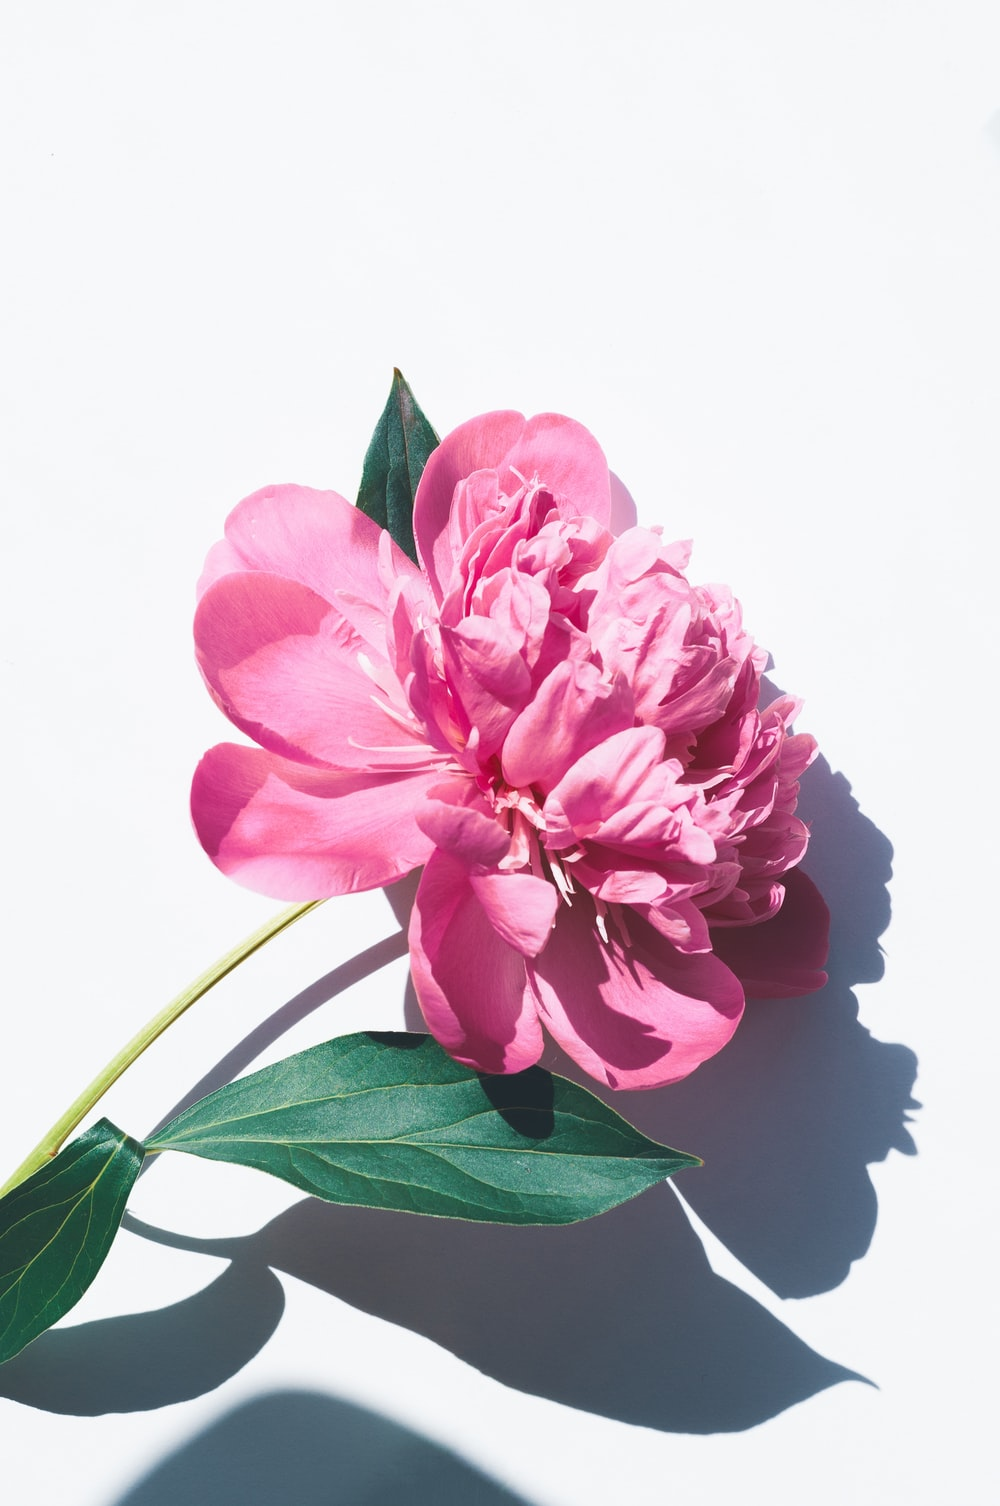 photo of pink petaled flowers